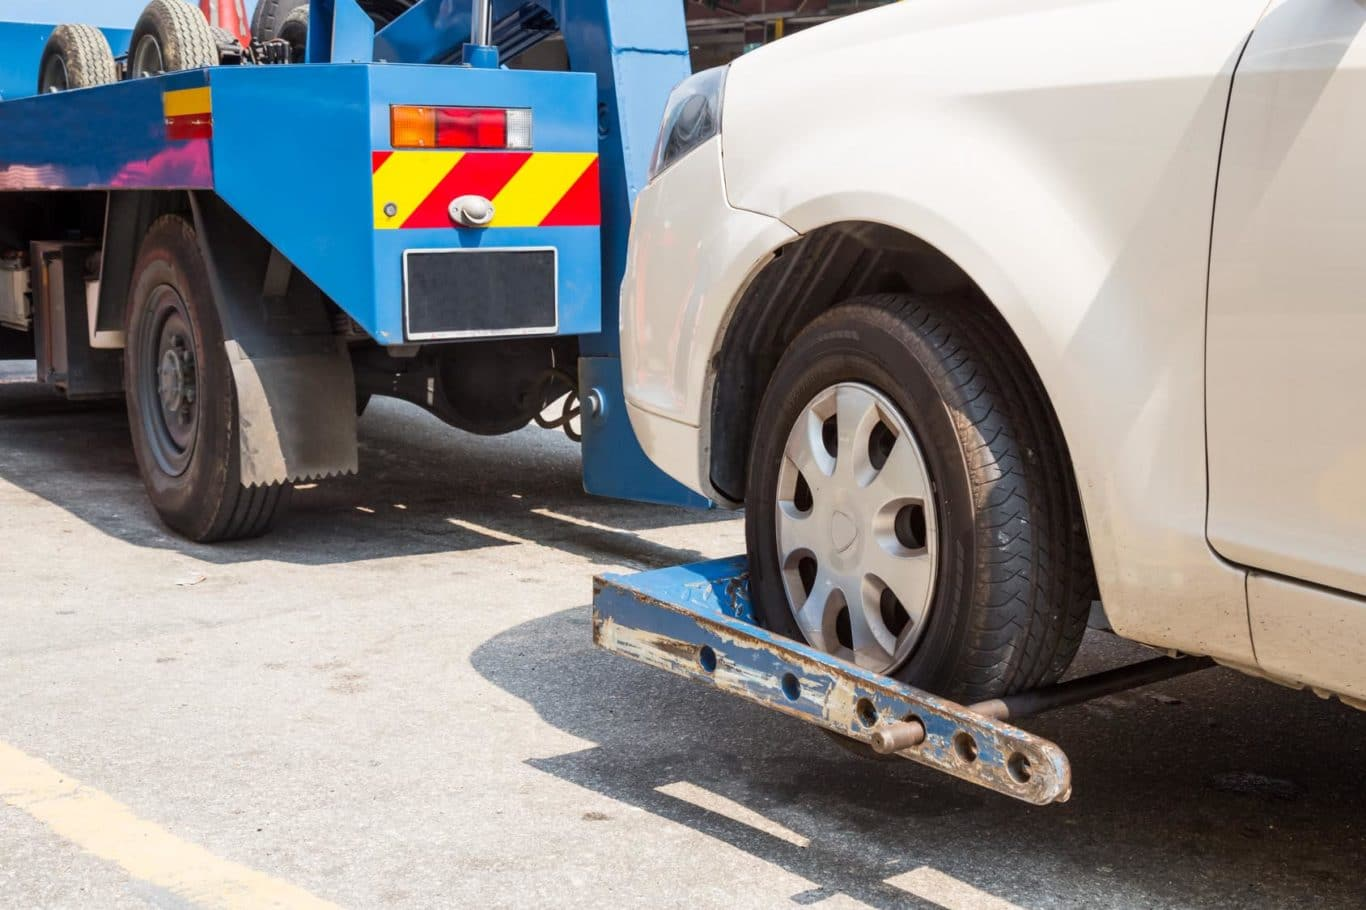 Dublin 14 (D14) Dublin, Dún Laoghaire–Rathdown, South Dublin expert Towing And Recovery Dublin services